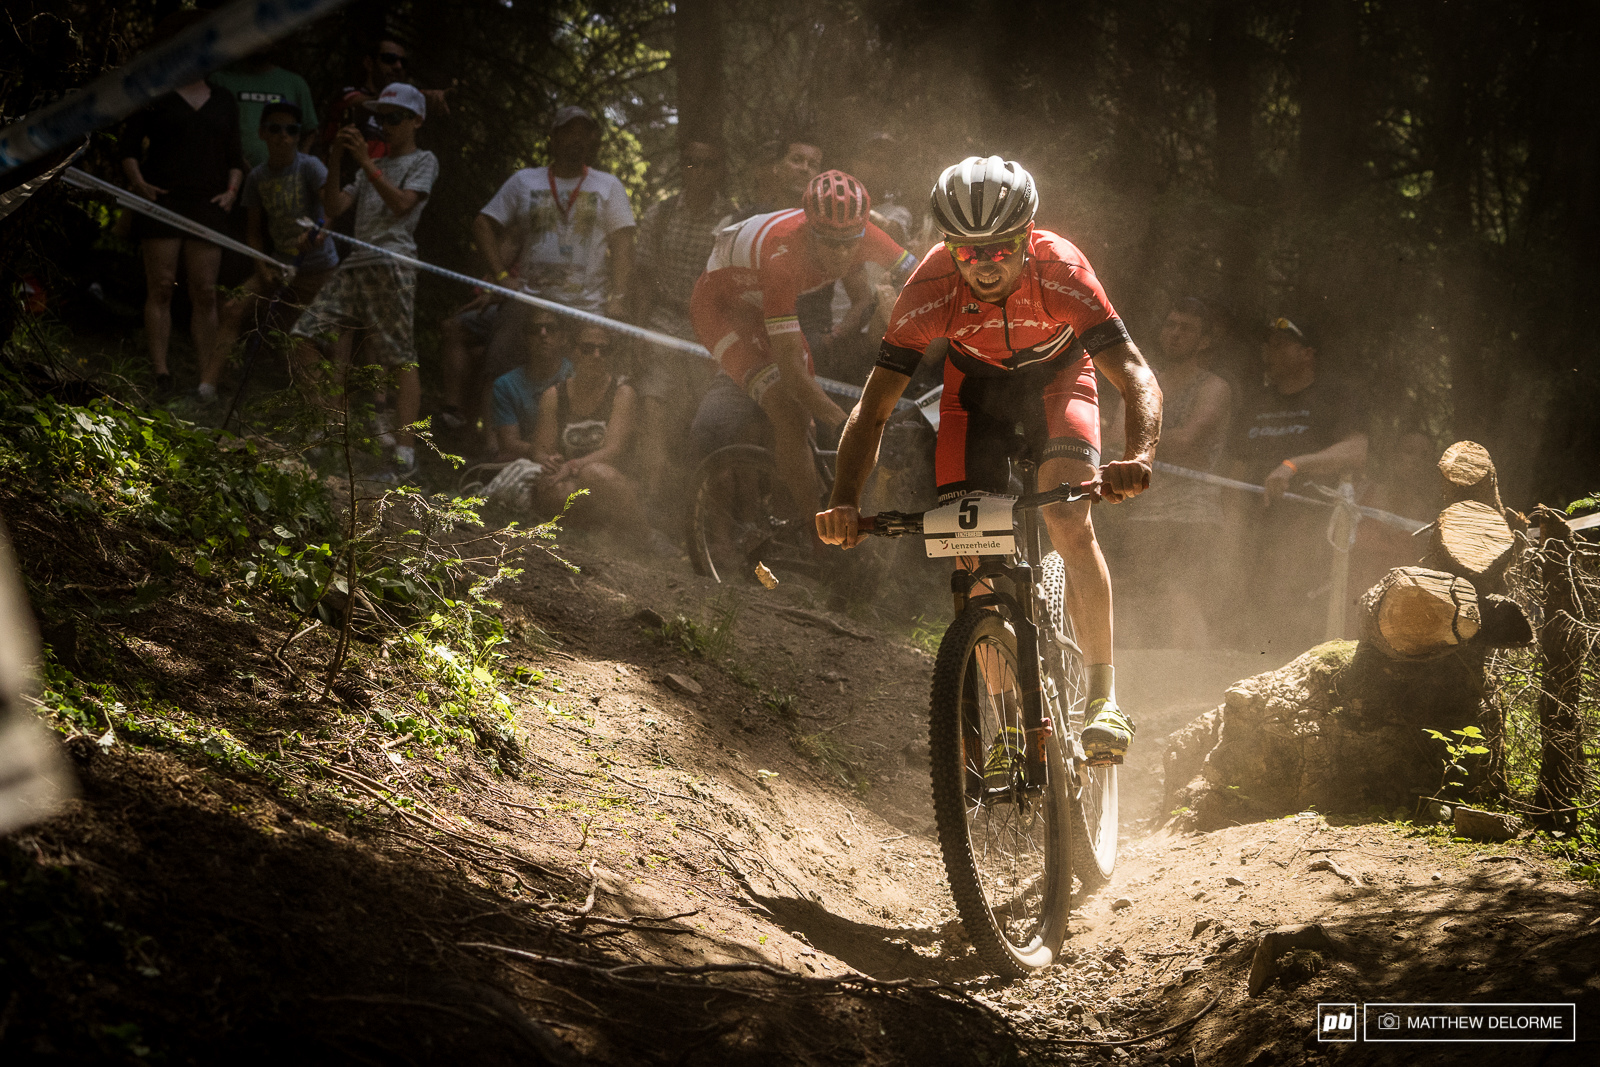 Mathias Flukiger is getting faster and faster. Fourth place today for the Stoeckli rider.